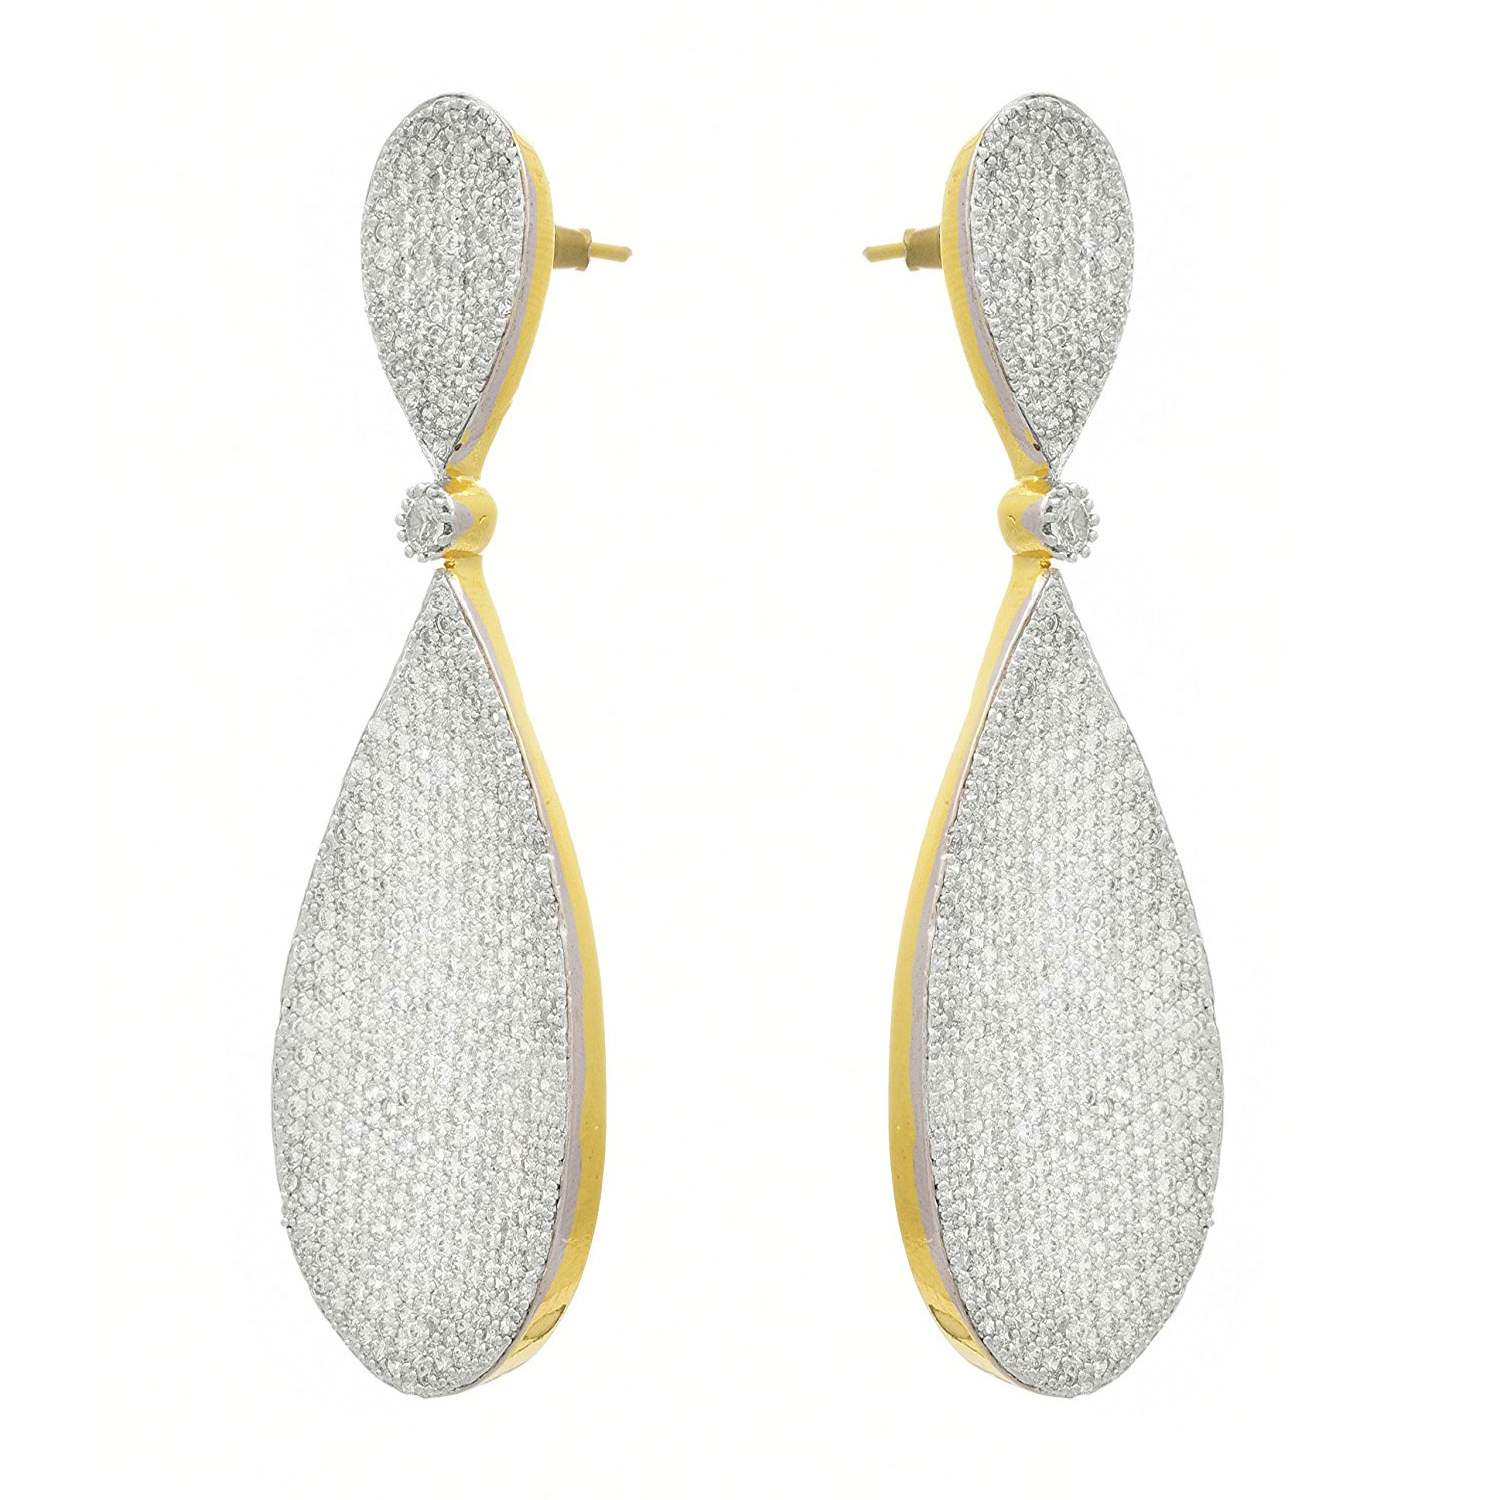 JFL - Fusion Ethnic One Gram Gold Plated Cz American Diamond Earrings For Women And Girls.